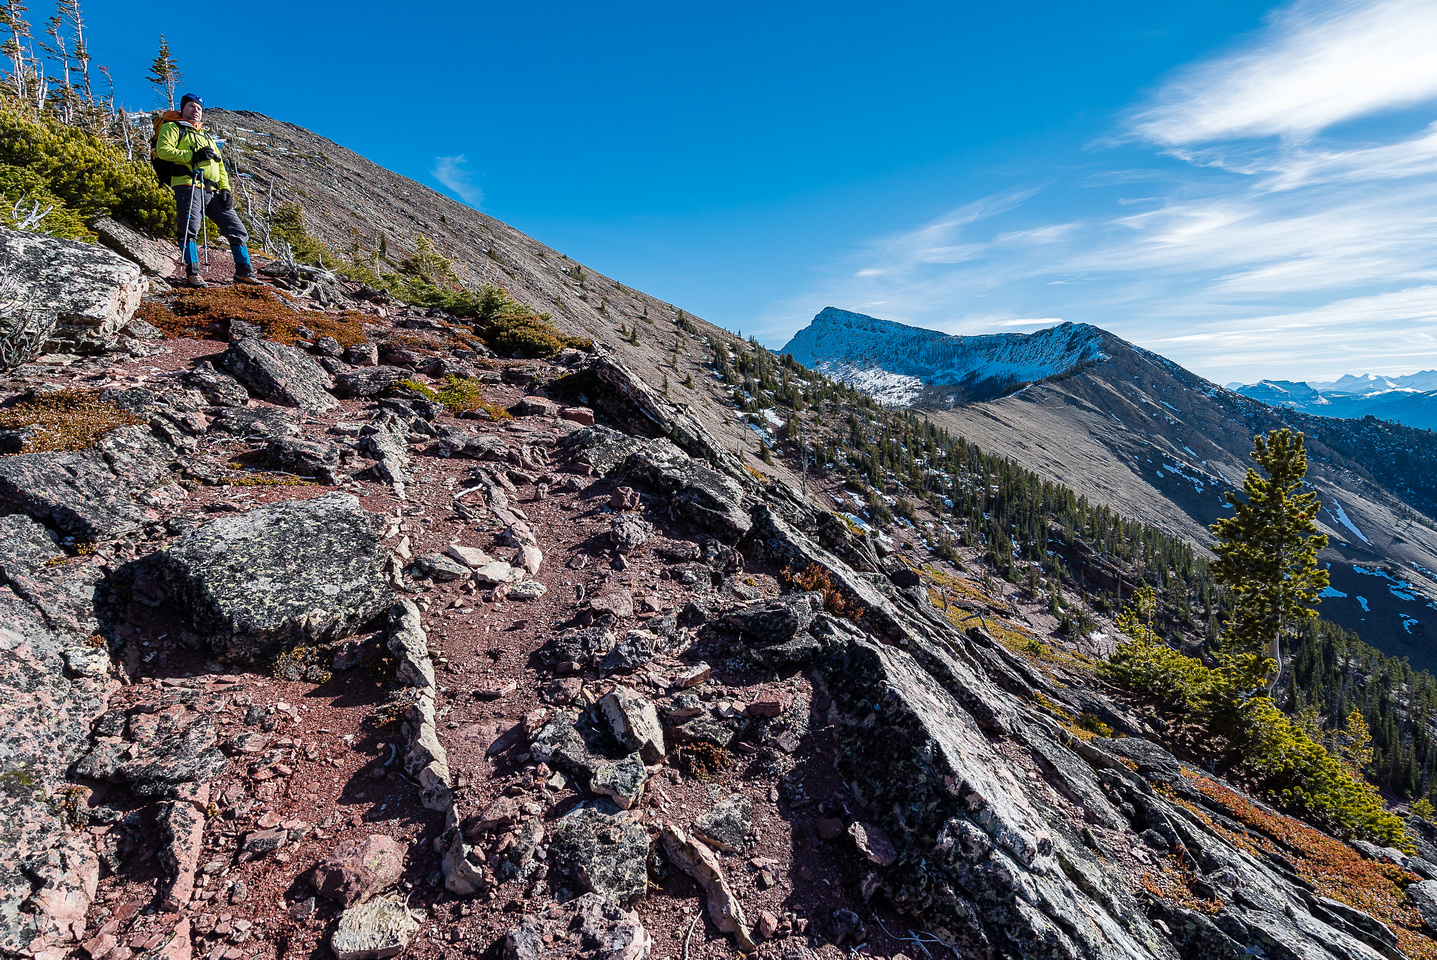 Looking back at our descent route with an unnamed - but interesting - peak at center distance.